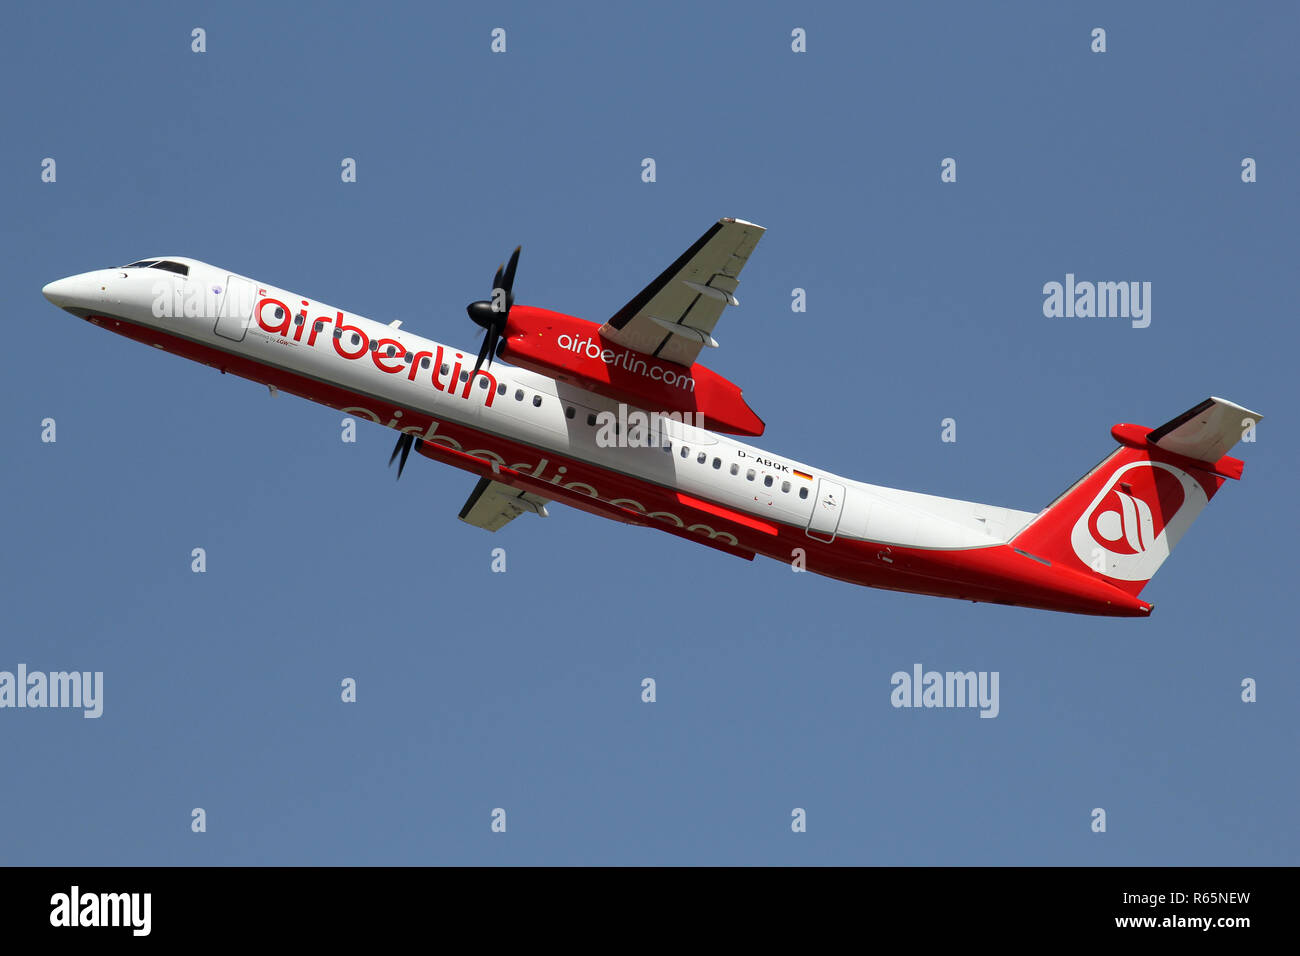 German LGW Bombardier Dash 8 Q400 in Air Berlin livery with registration D-ABQK just airborne at Dusseldorf Airport. - Stock Image